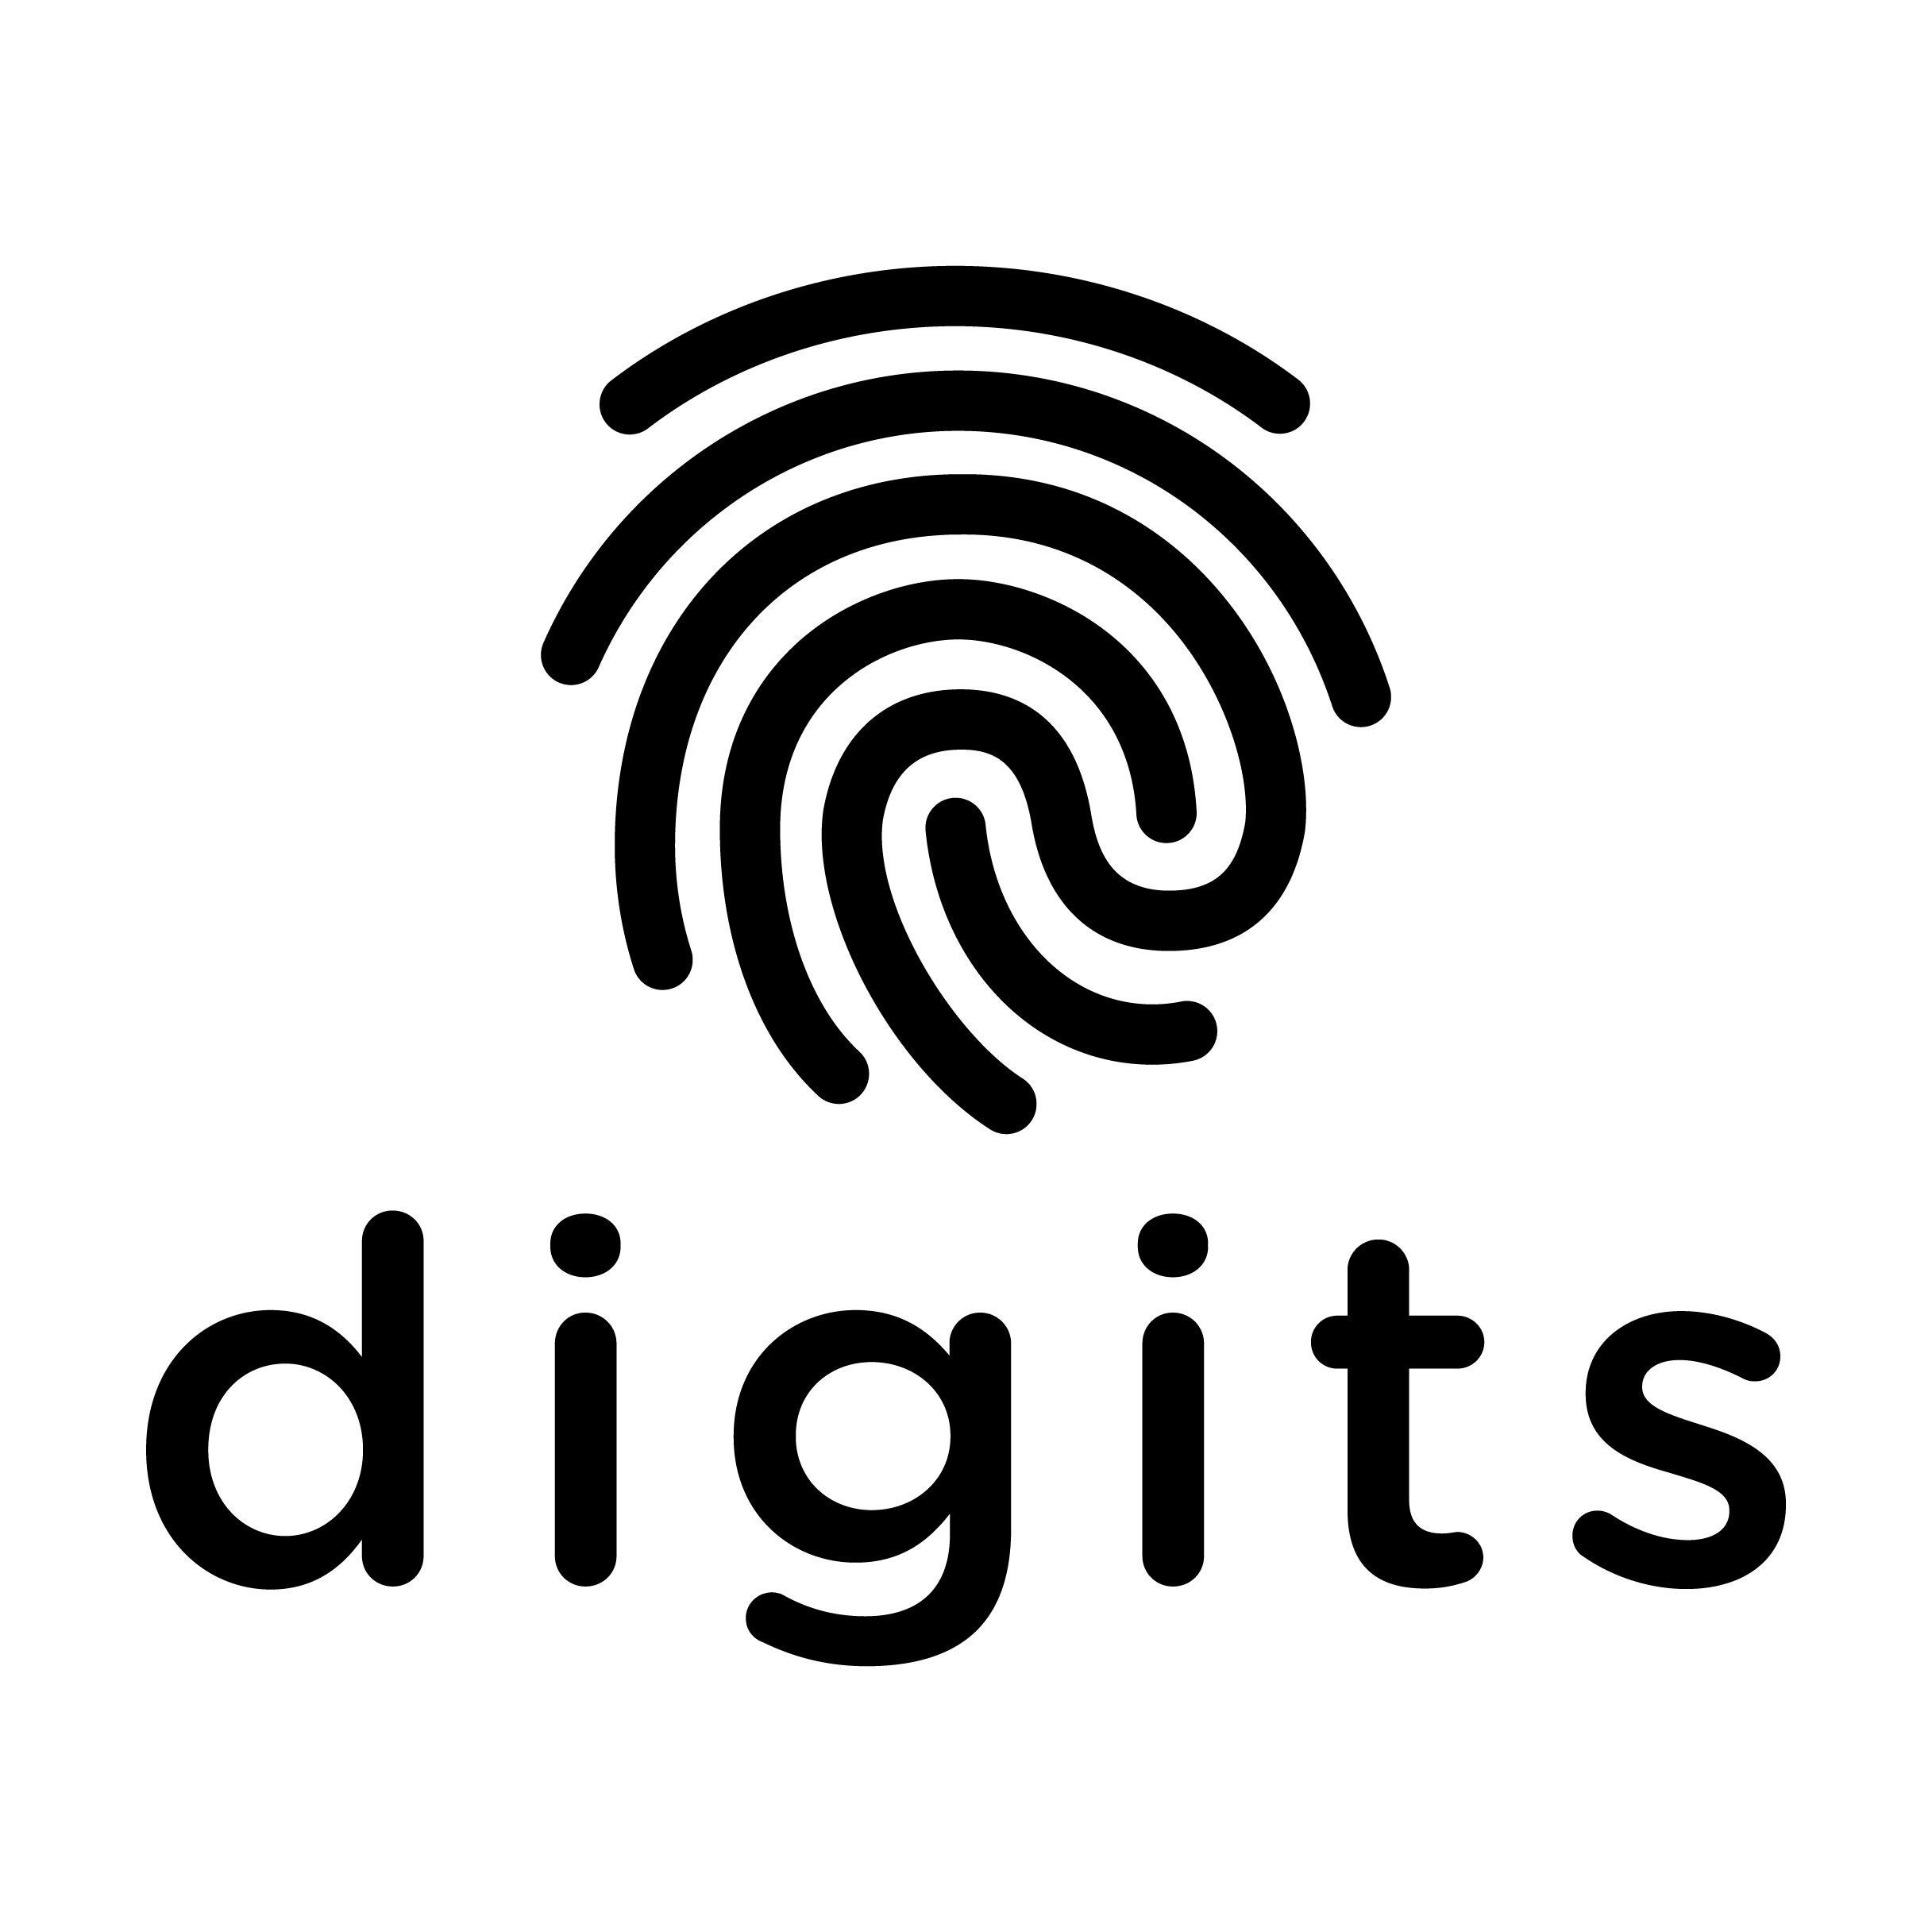 Digits | Digital inclusion